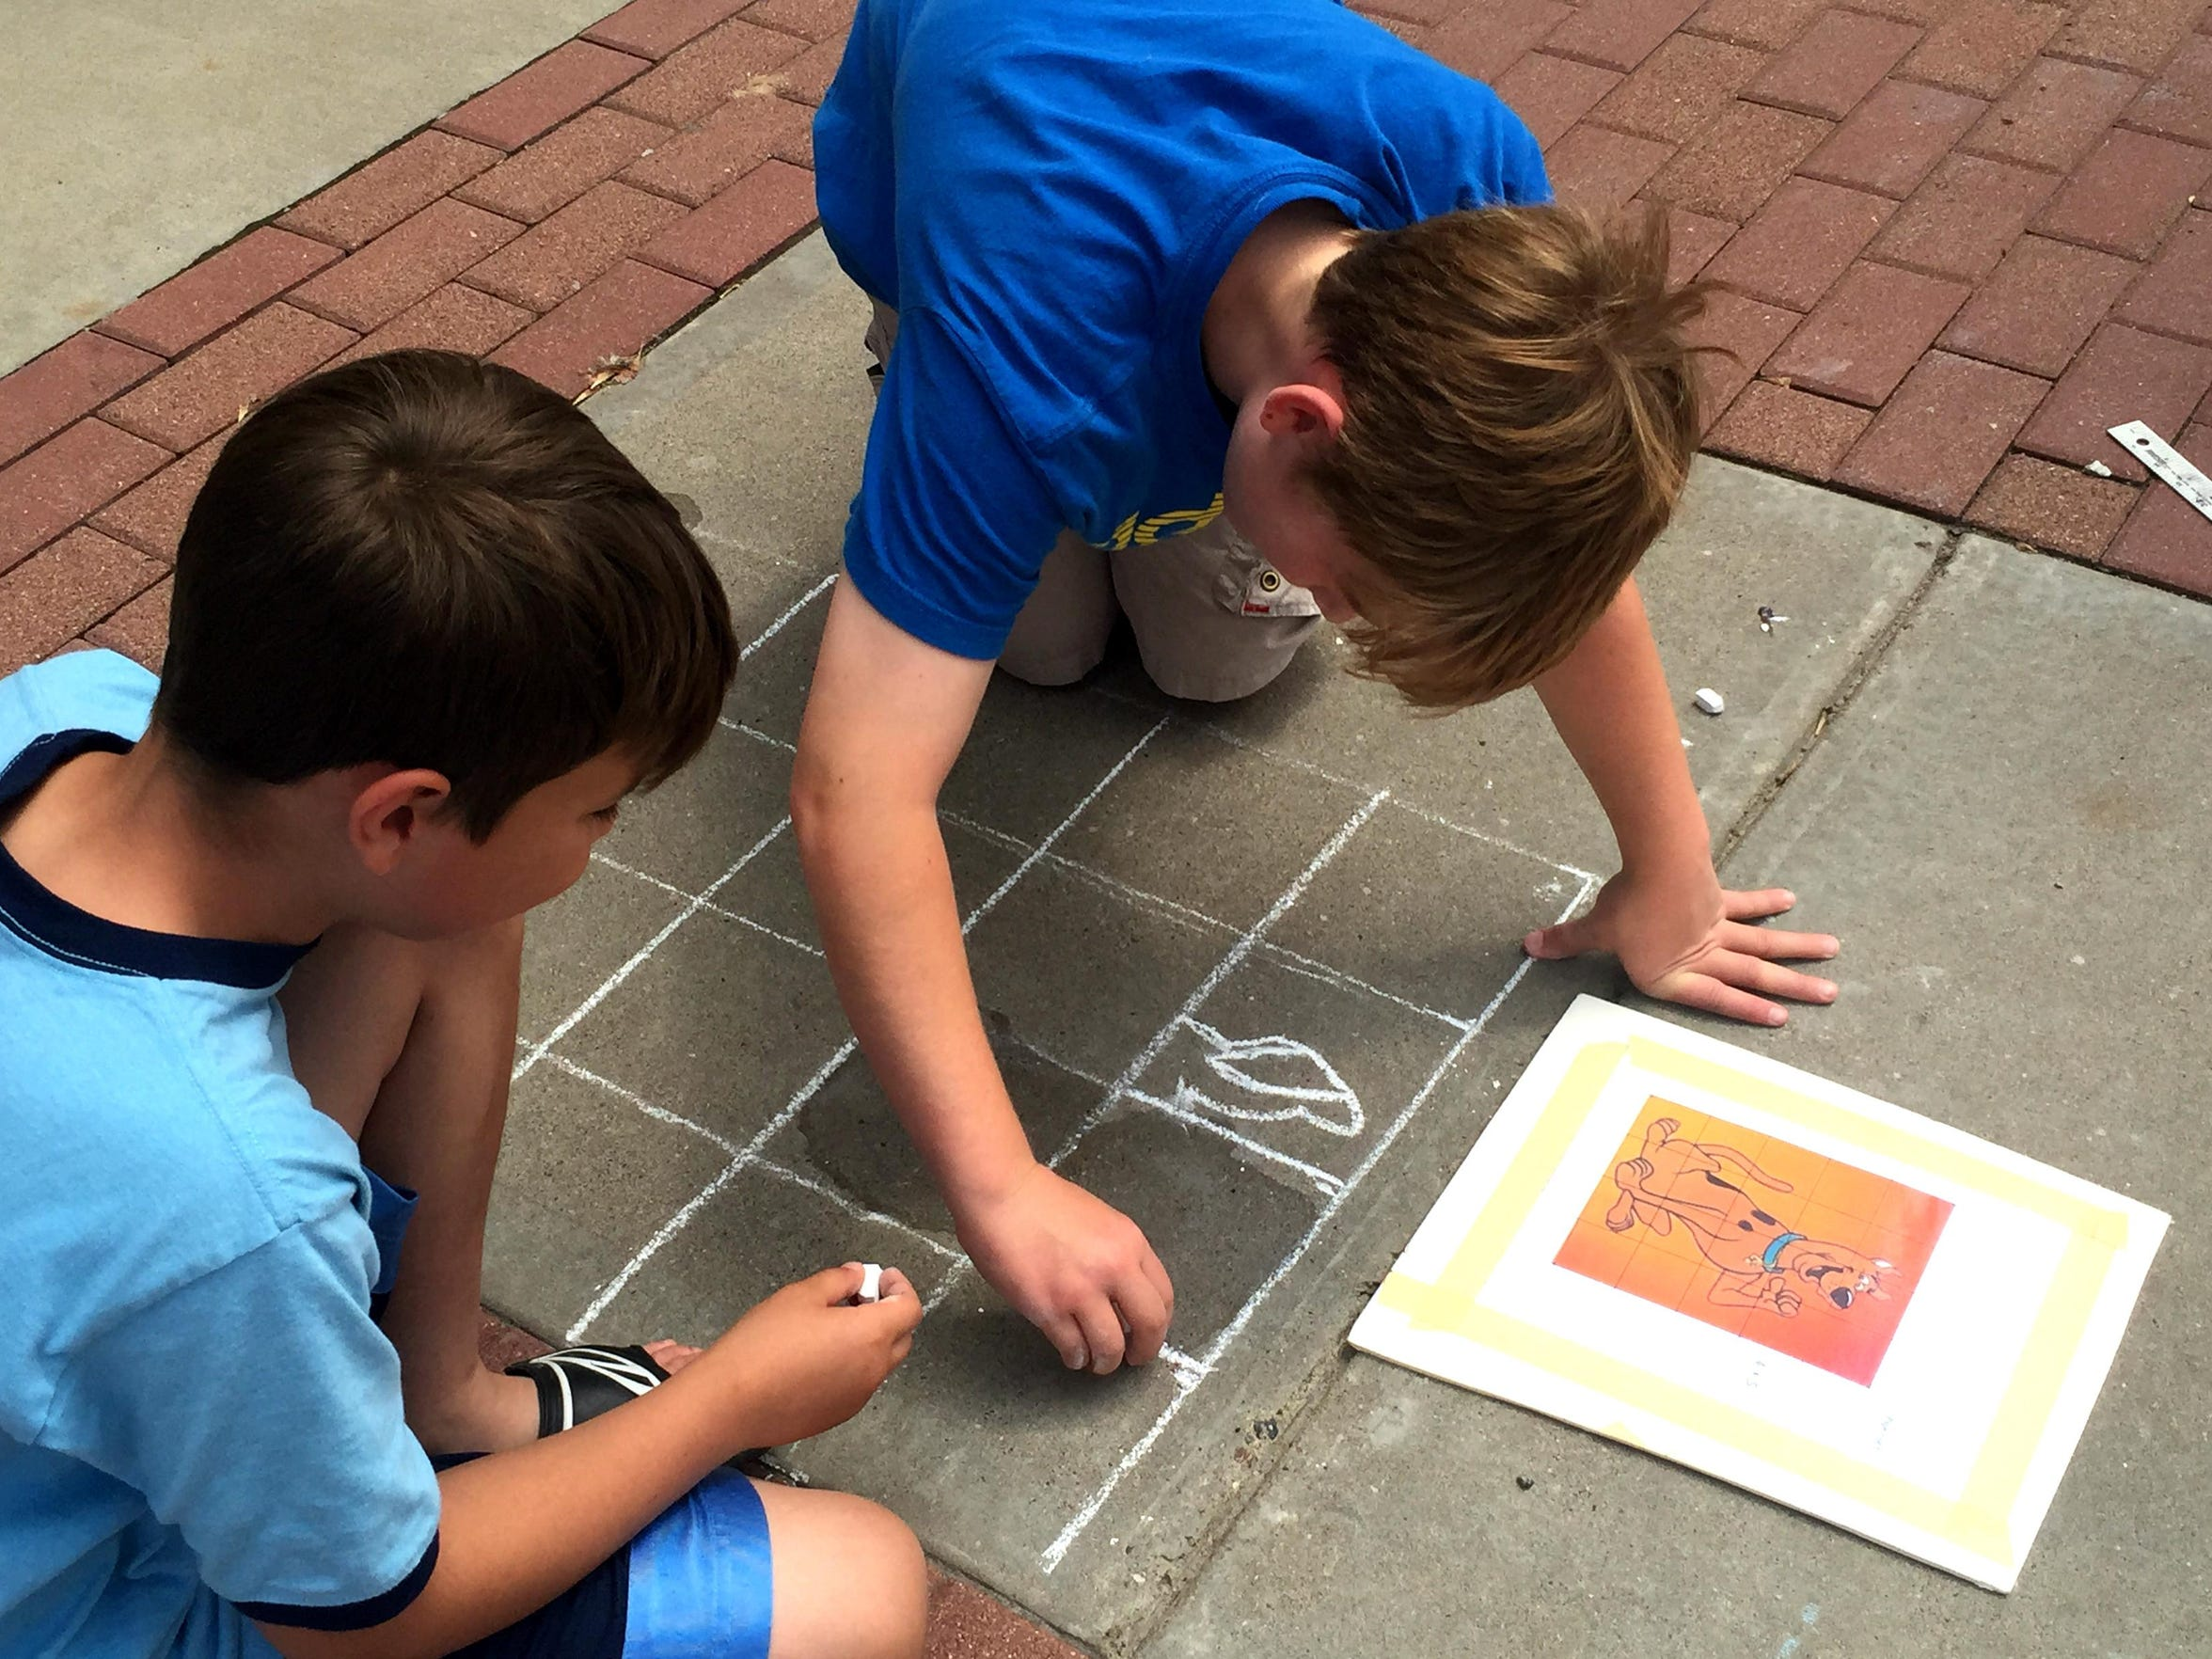 To reduce crookedness and uneven lines, artists can use a grid to divide the picture they plan to recreate at Chalkfest into squares.